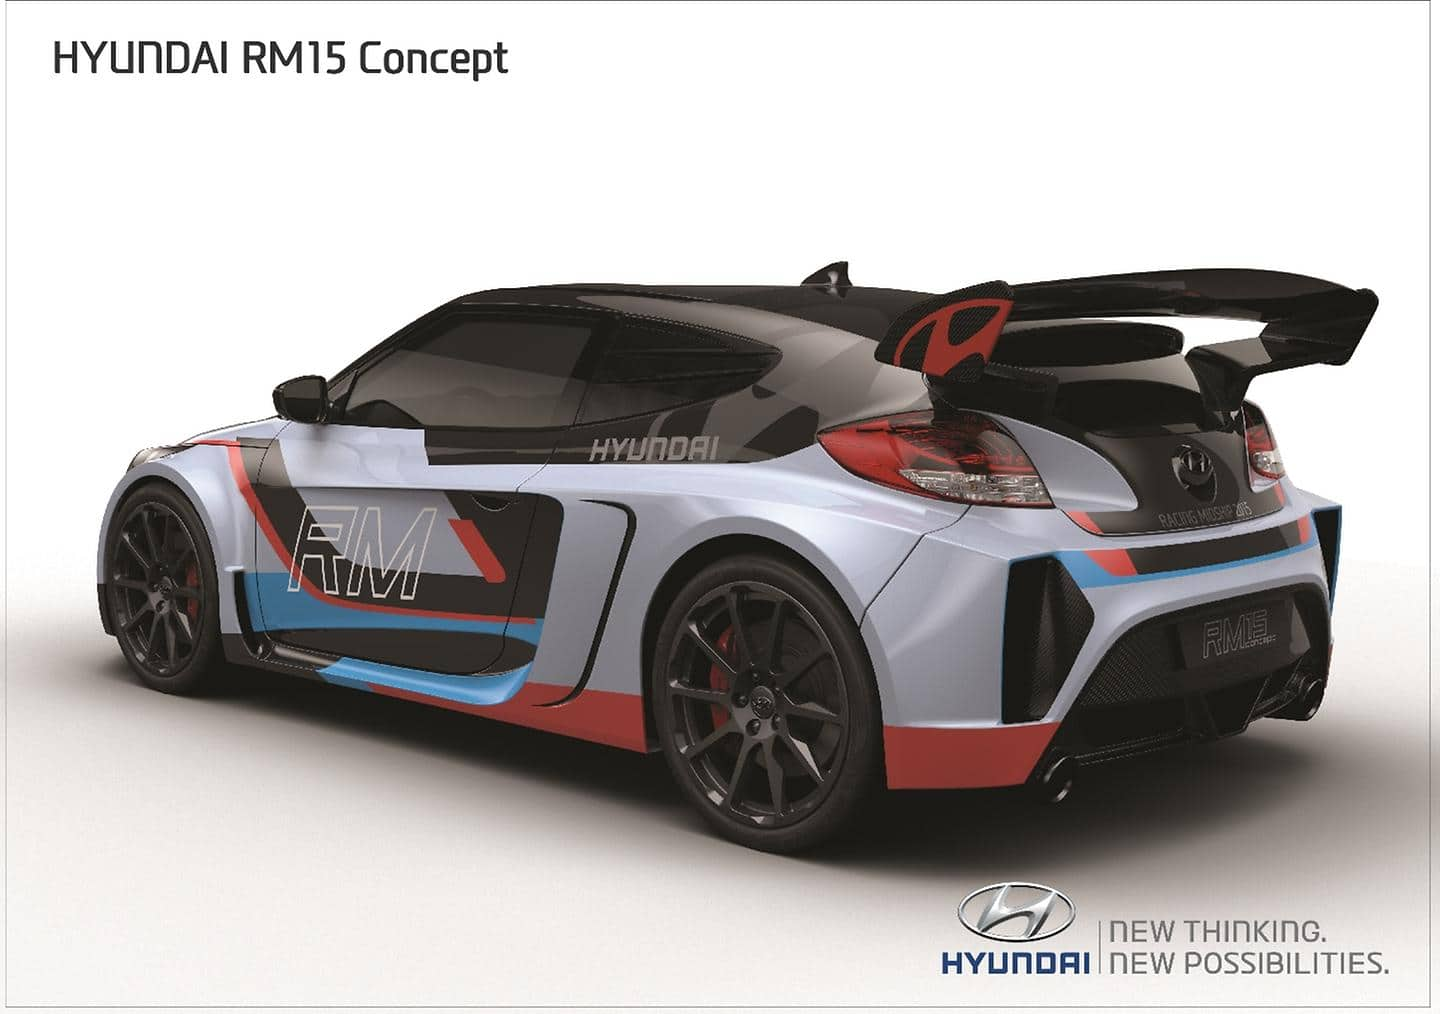 Hyundai Motor's Mid-engined Coupe Concept 'RM15' Revealed at 2015 Seoul Motor Show (4)